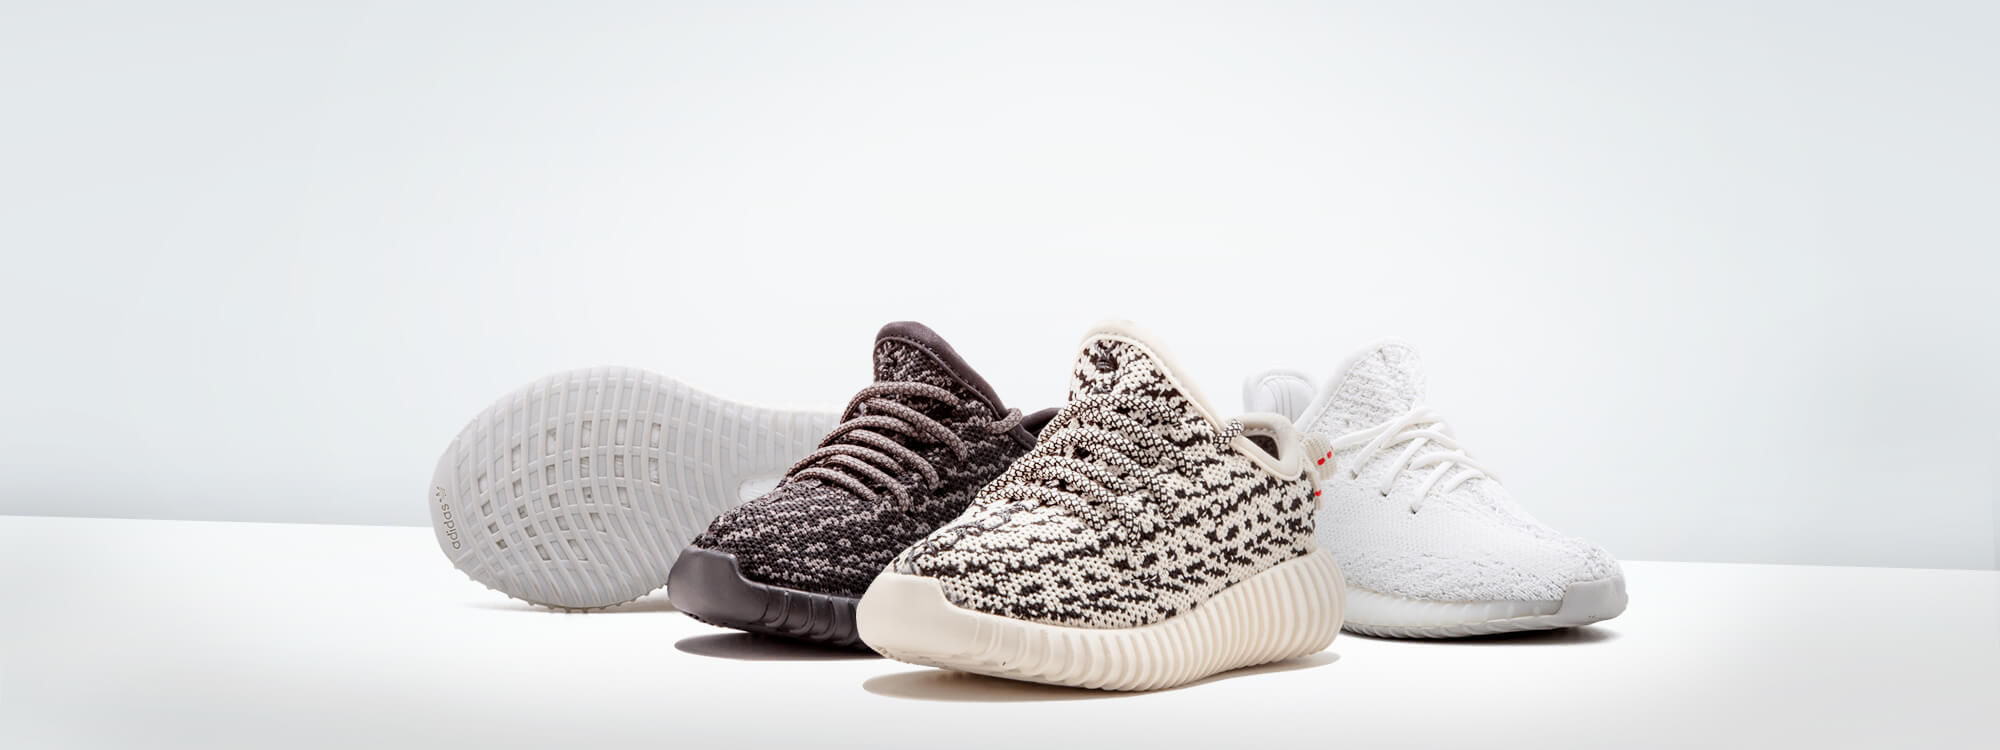 Adidas Yeezy Boost 350 INFANT must-have running for beginners